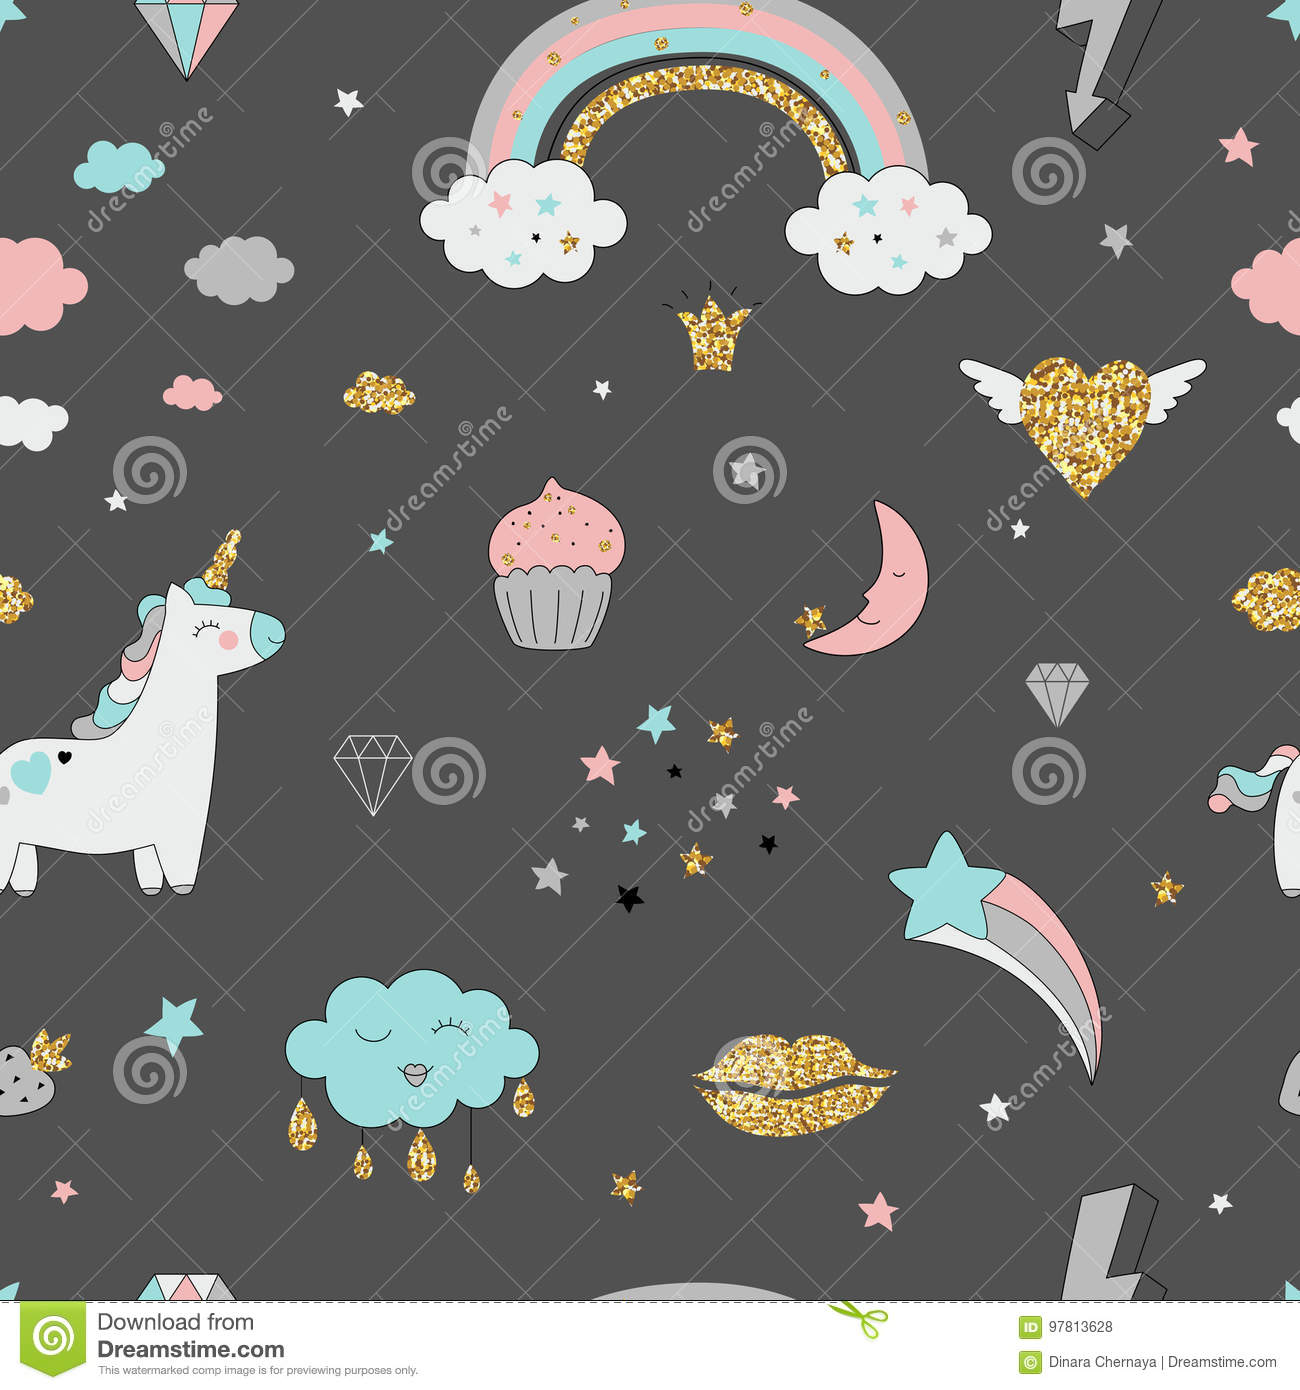 Glitter Animal Print Wallpaper Vector Pattern With Unicorn Clouds And Rainbow Royalty